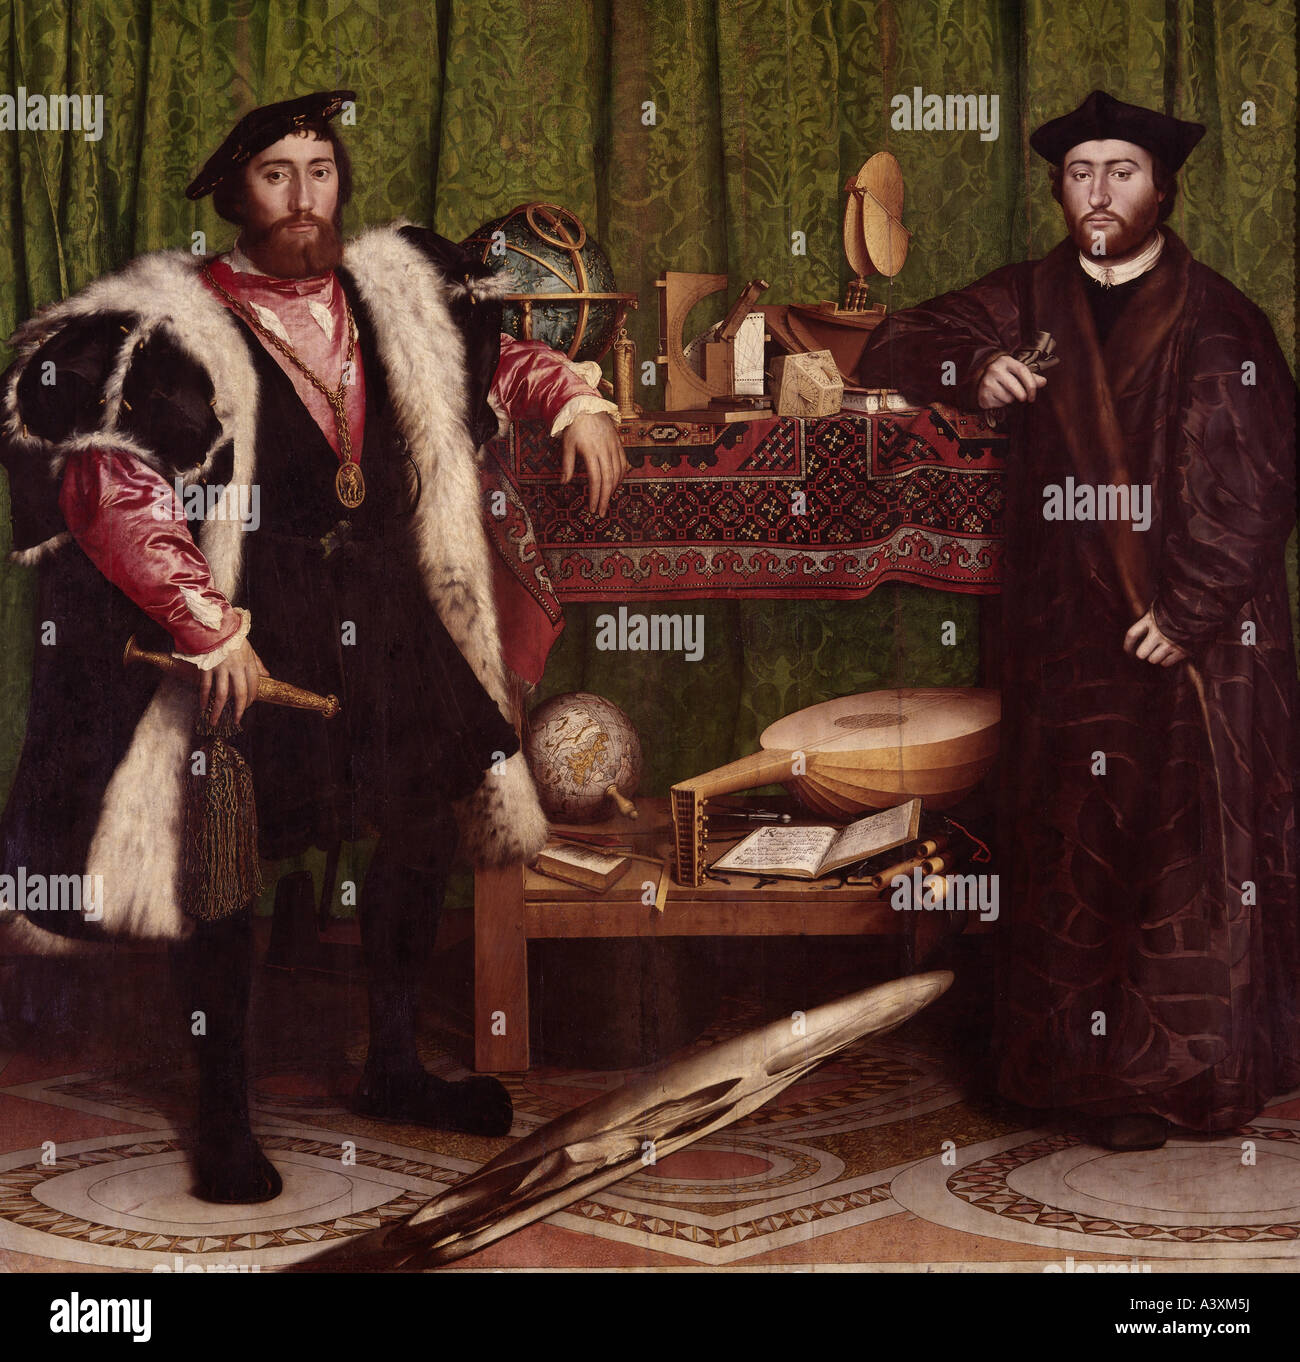 """""""fine arts, Holbein, Hans the Younger, (circa 1497 - 1543), painting, """"the ambassadors"""", 1533, oil on panel, 207 Stock Photo"""